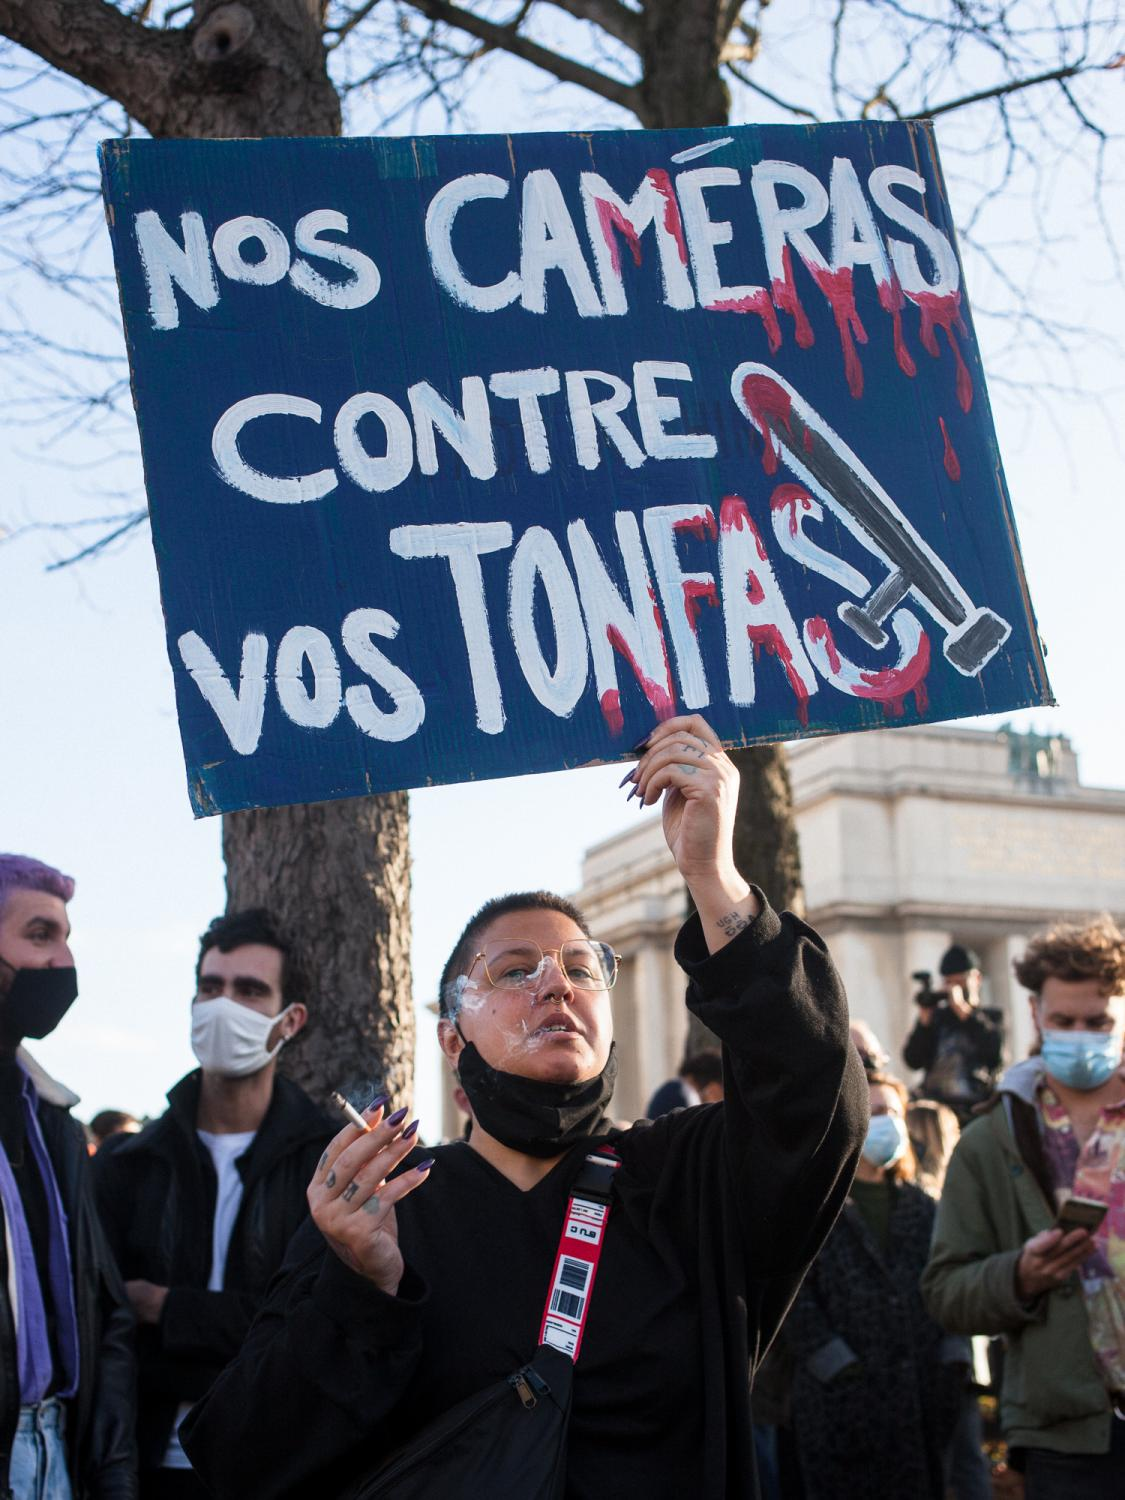 """In front of the barricaded Human Rights Square a woman holds a banner reading """"Nos caméras contre vos tonfas"""" (Our cameras against your batons). Rally against the controversial so called """"Sécurité Globale"""" (Global Security) bill. Trocadero Square, Paris, France, the 21st of November 2020."""